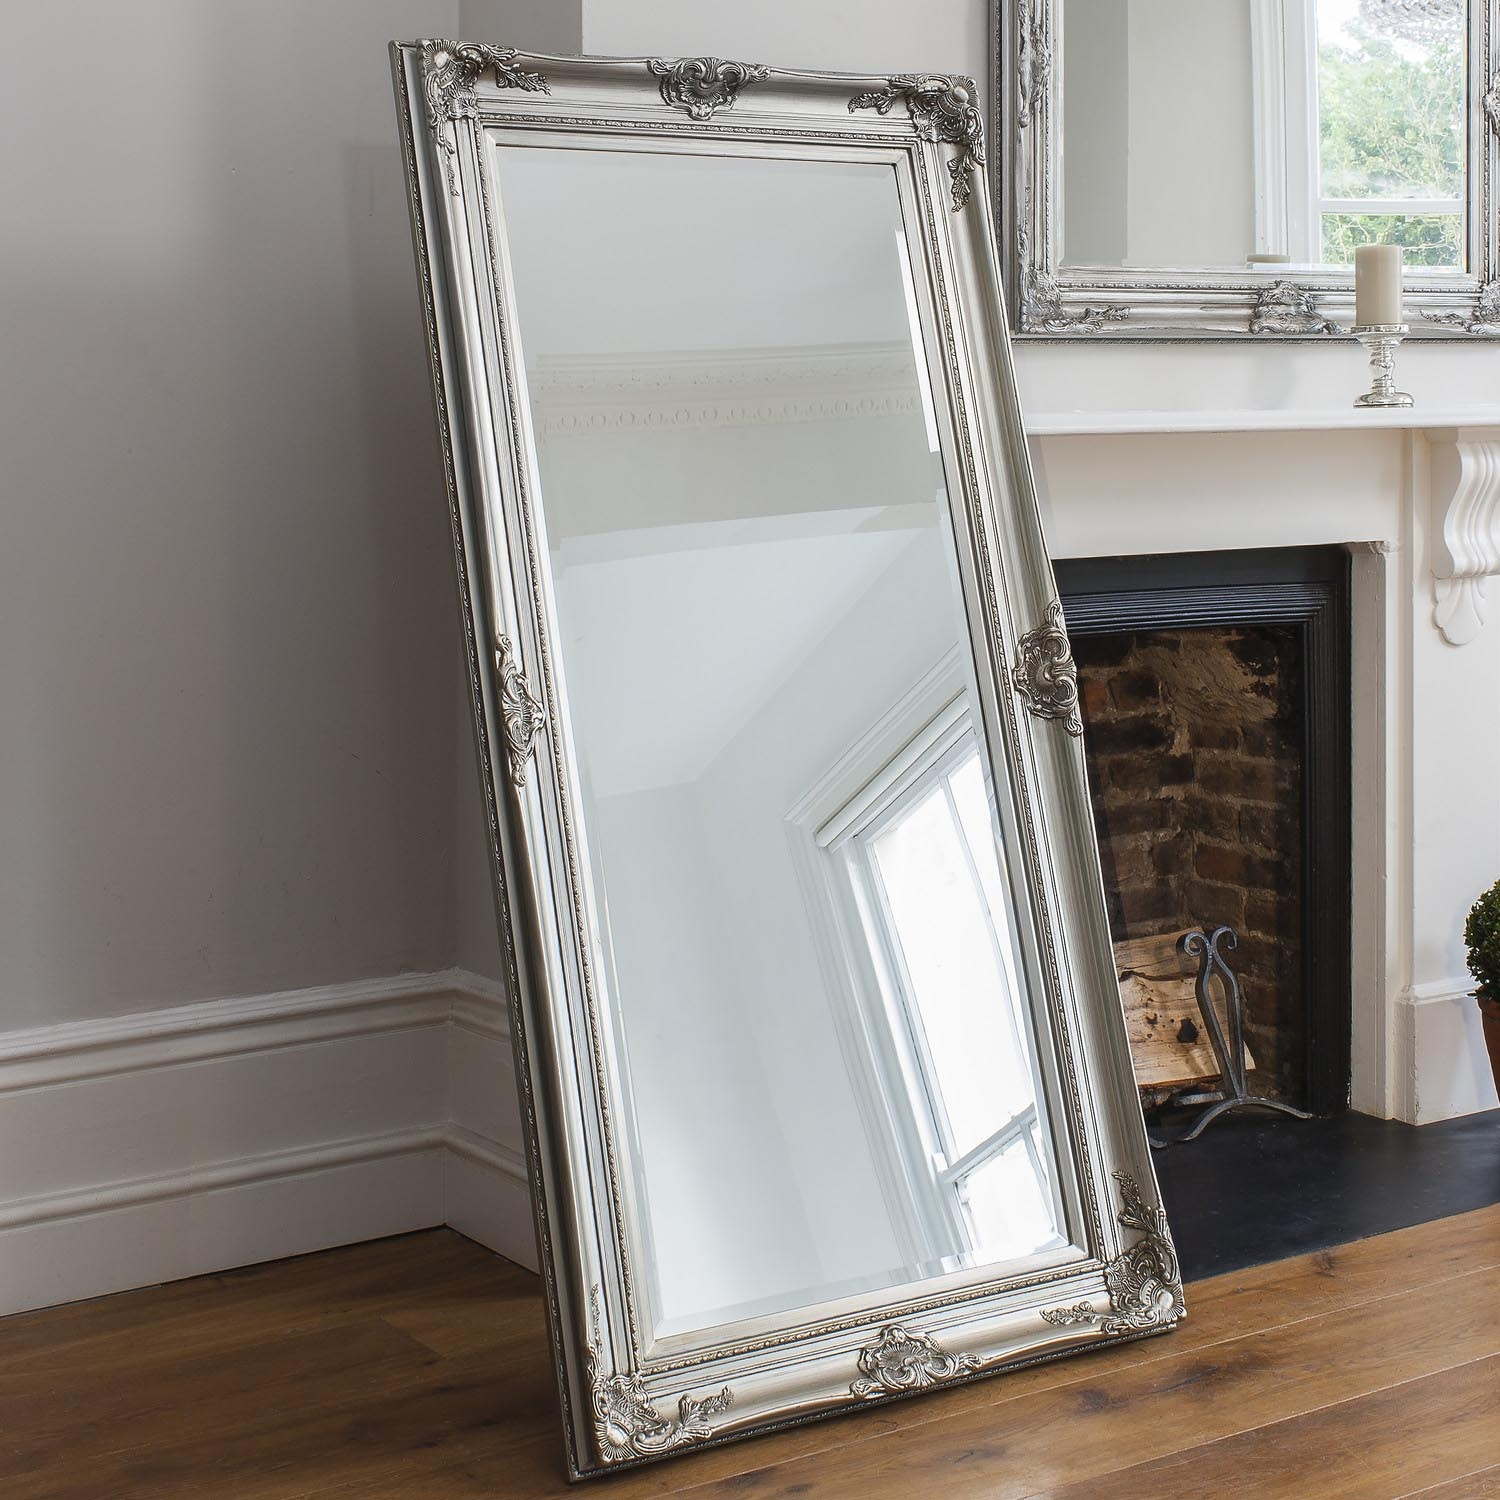 Floor To Ceiling Mirrors For Sale Winda 7 Furniture For Floor To Ceiling Mirrors For Sale (Image 11 of 15)